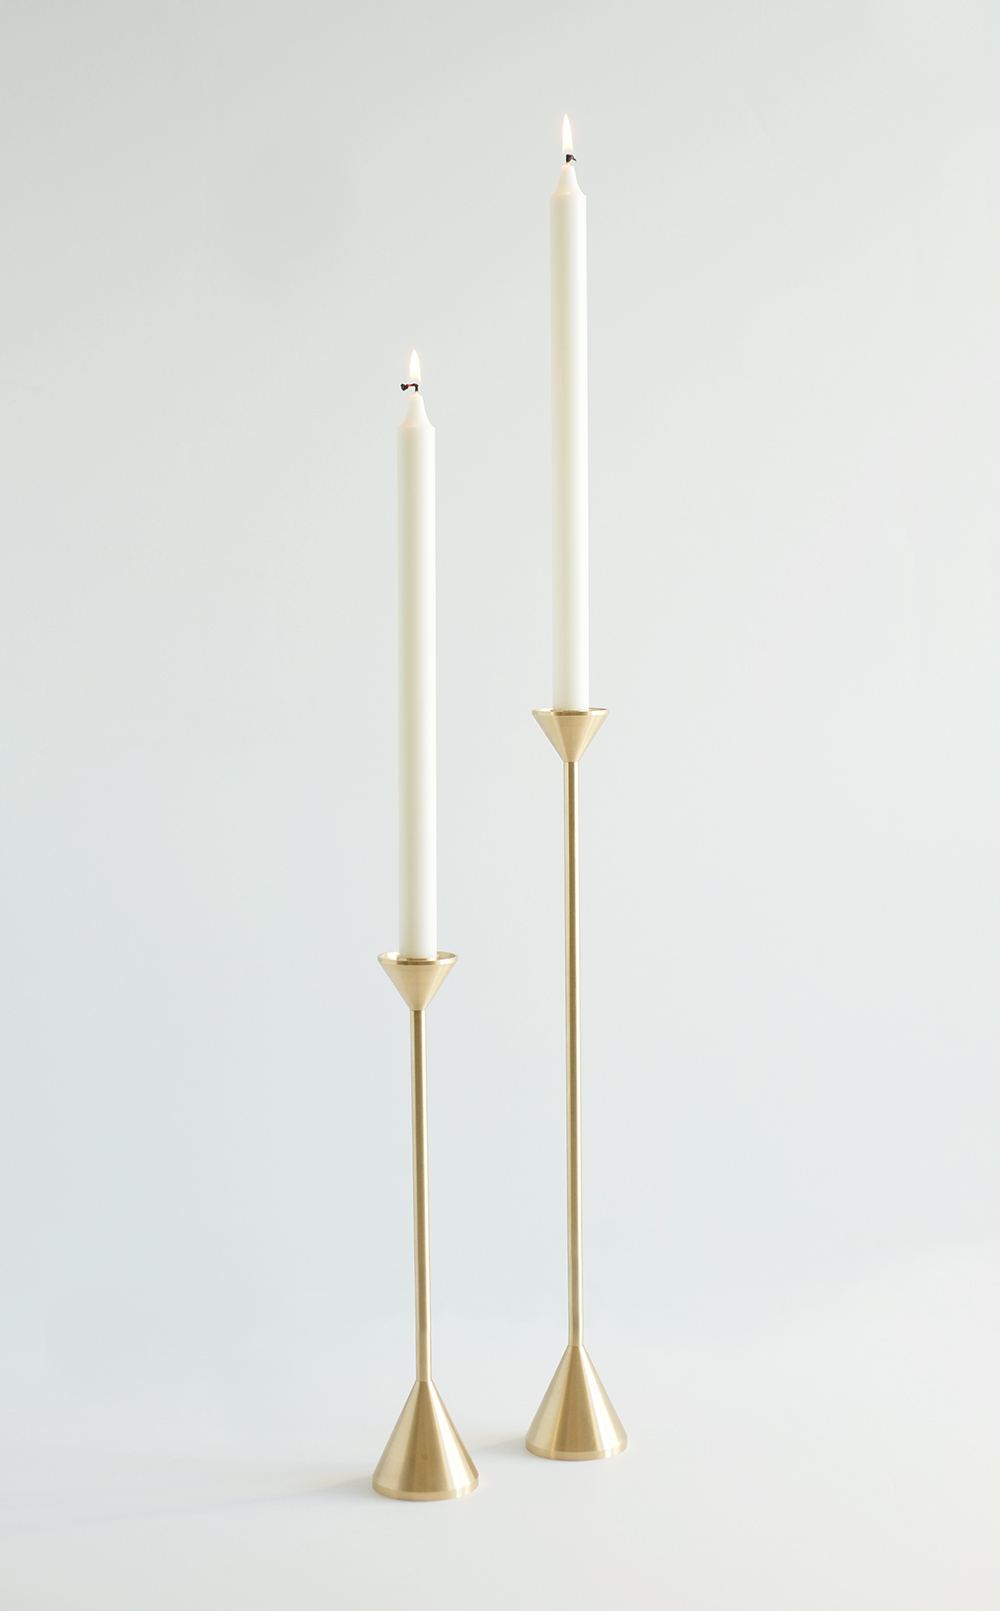 "Curator: it did not attempt to ""outshine"" the candle but announce it's presence with it's own quiet beauty. - The tall, simple design of this candle holder adds a modern twist to a classic object and creates an elegant accent in any living or dining room. Machined from solid brass, it demonstrates the impressive weight of brass and the precision of the tool used to form it."